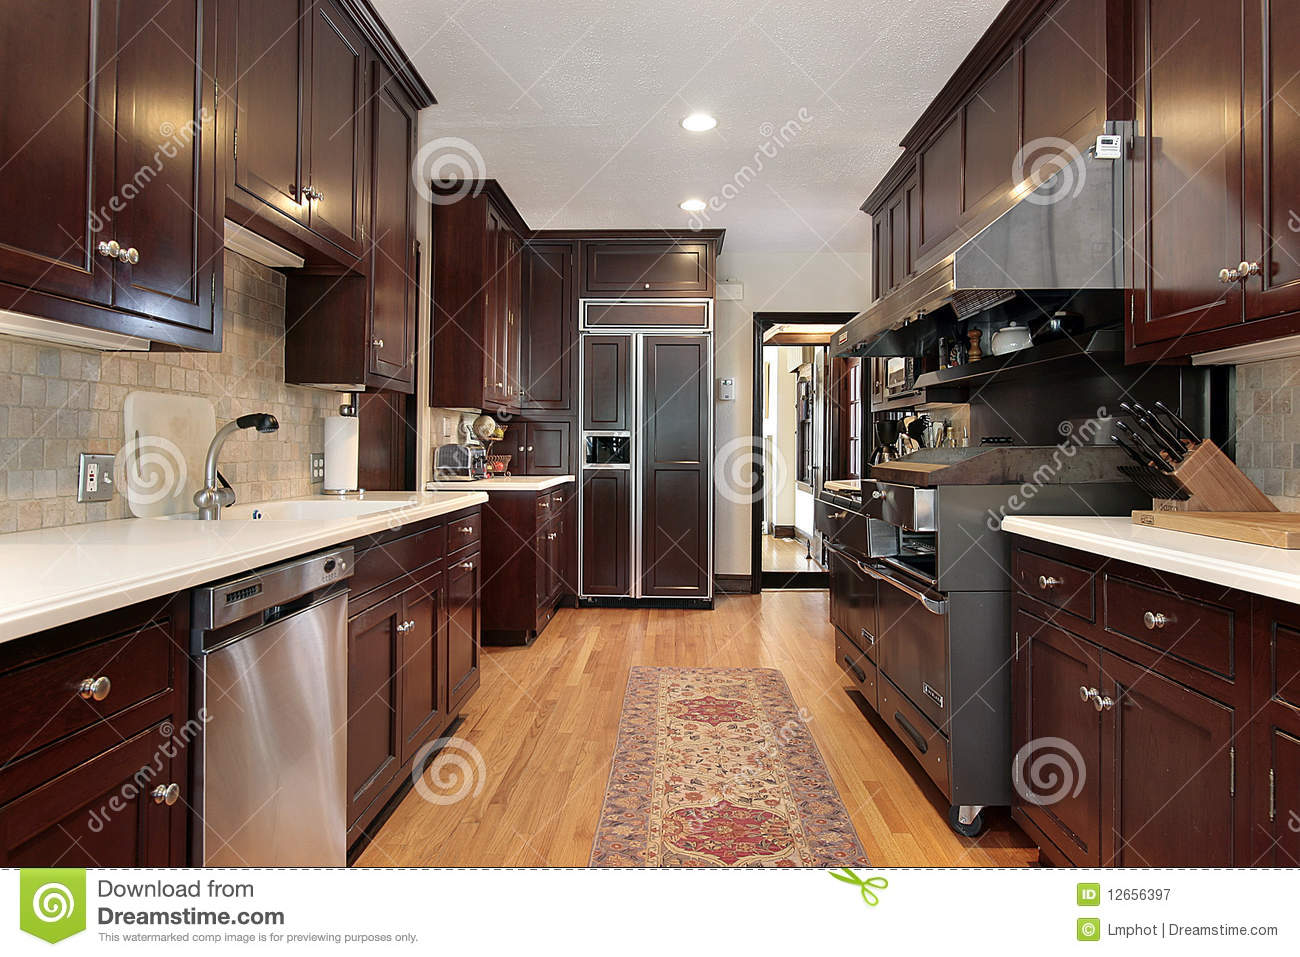 wood cabinet kitchen royalty free stock photography image 12656397